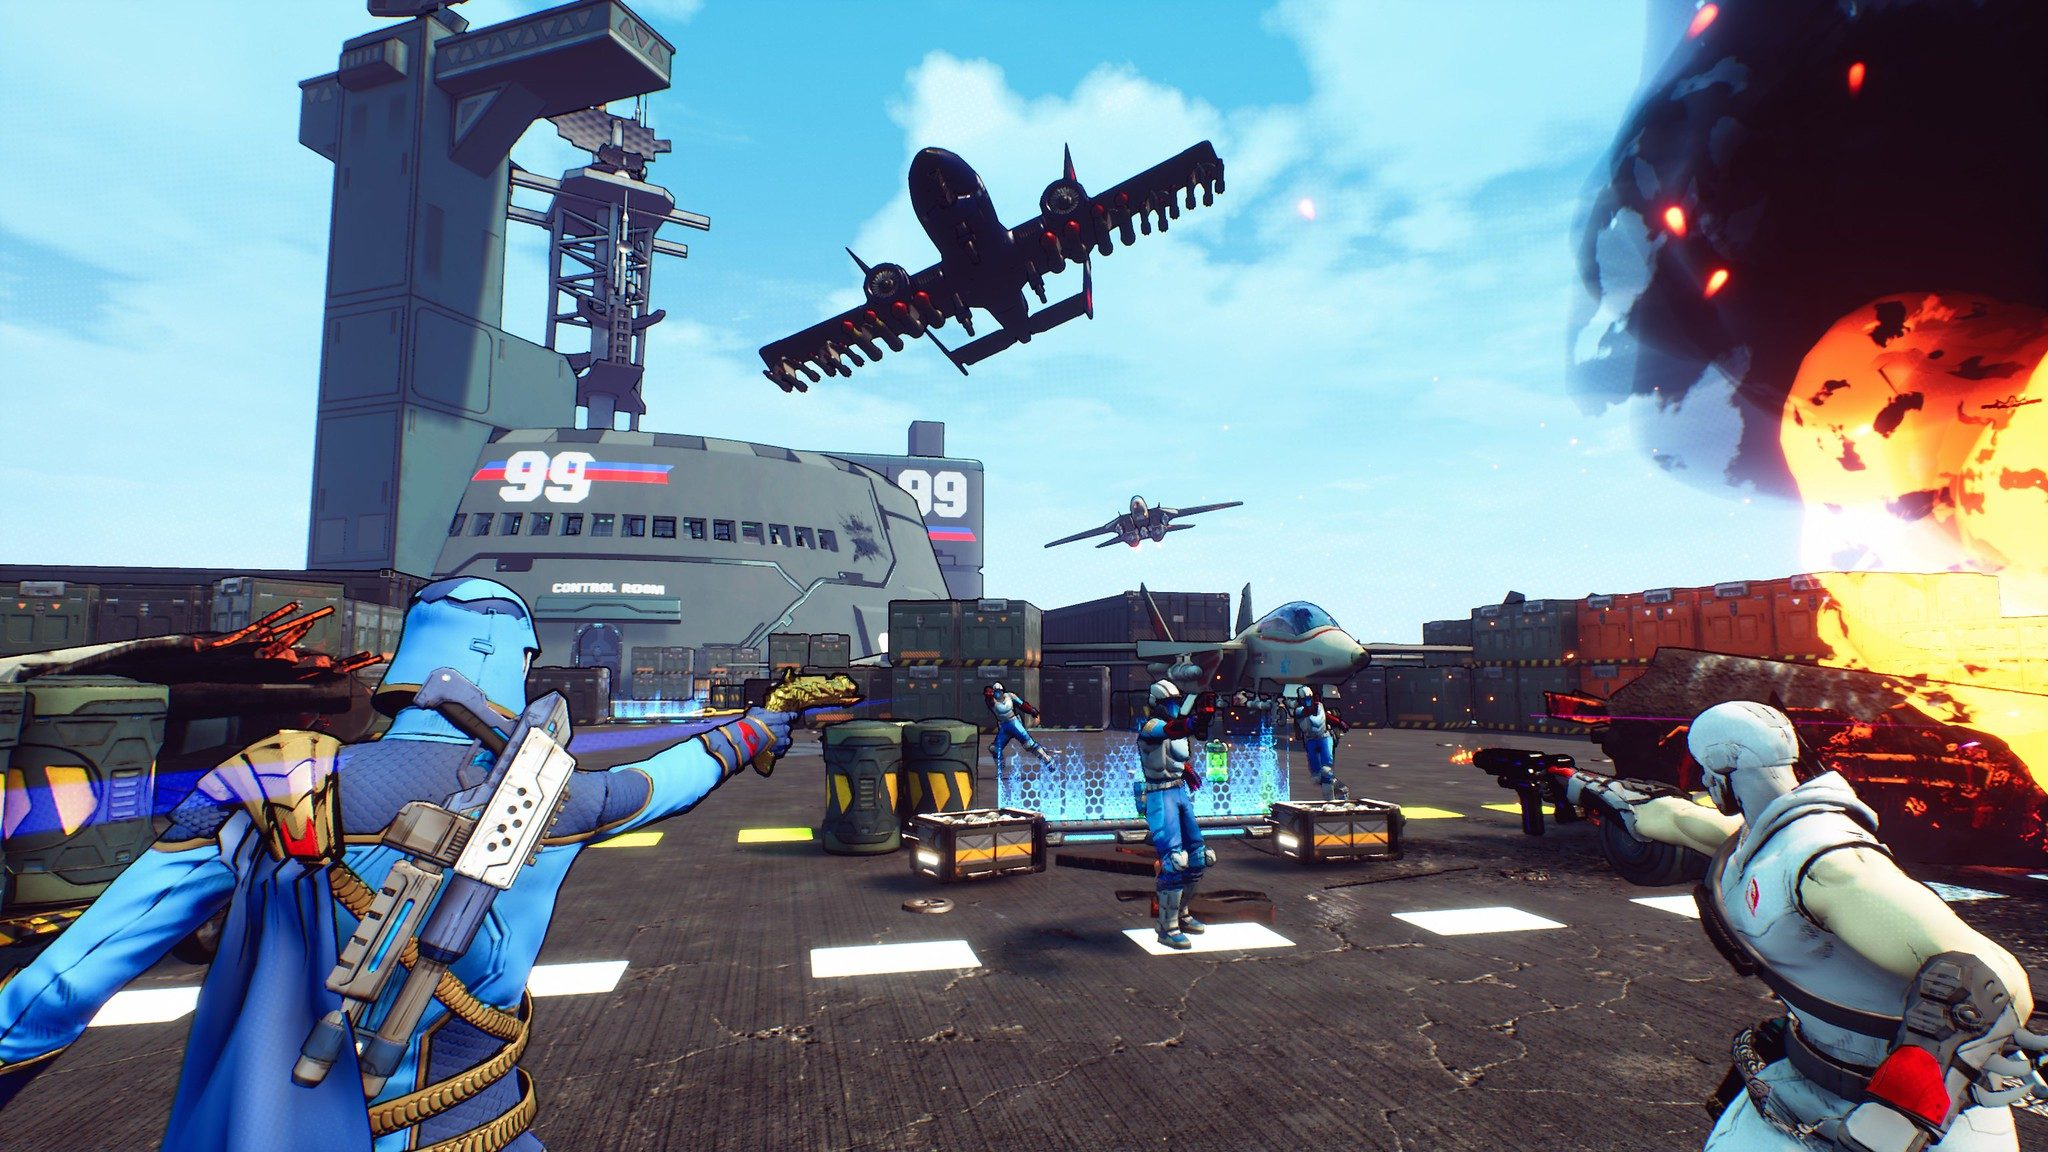 G.I. Joe: Operation Blackout, out tomorrow, is made by fans for fans